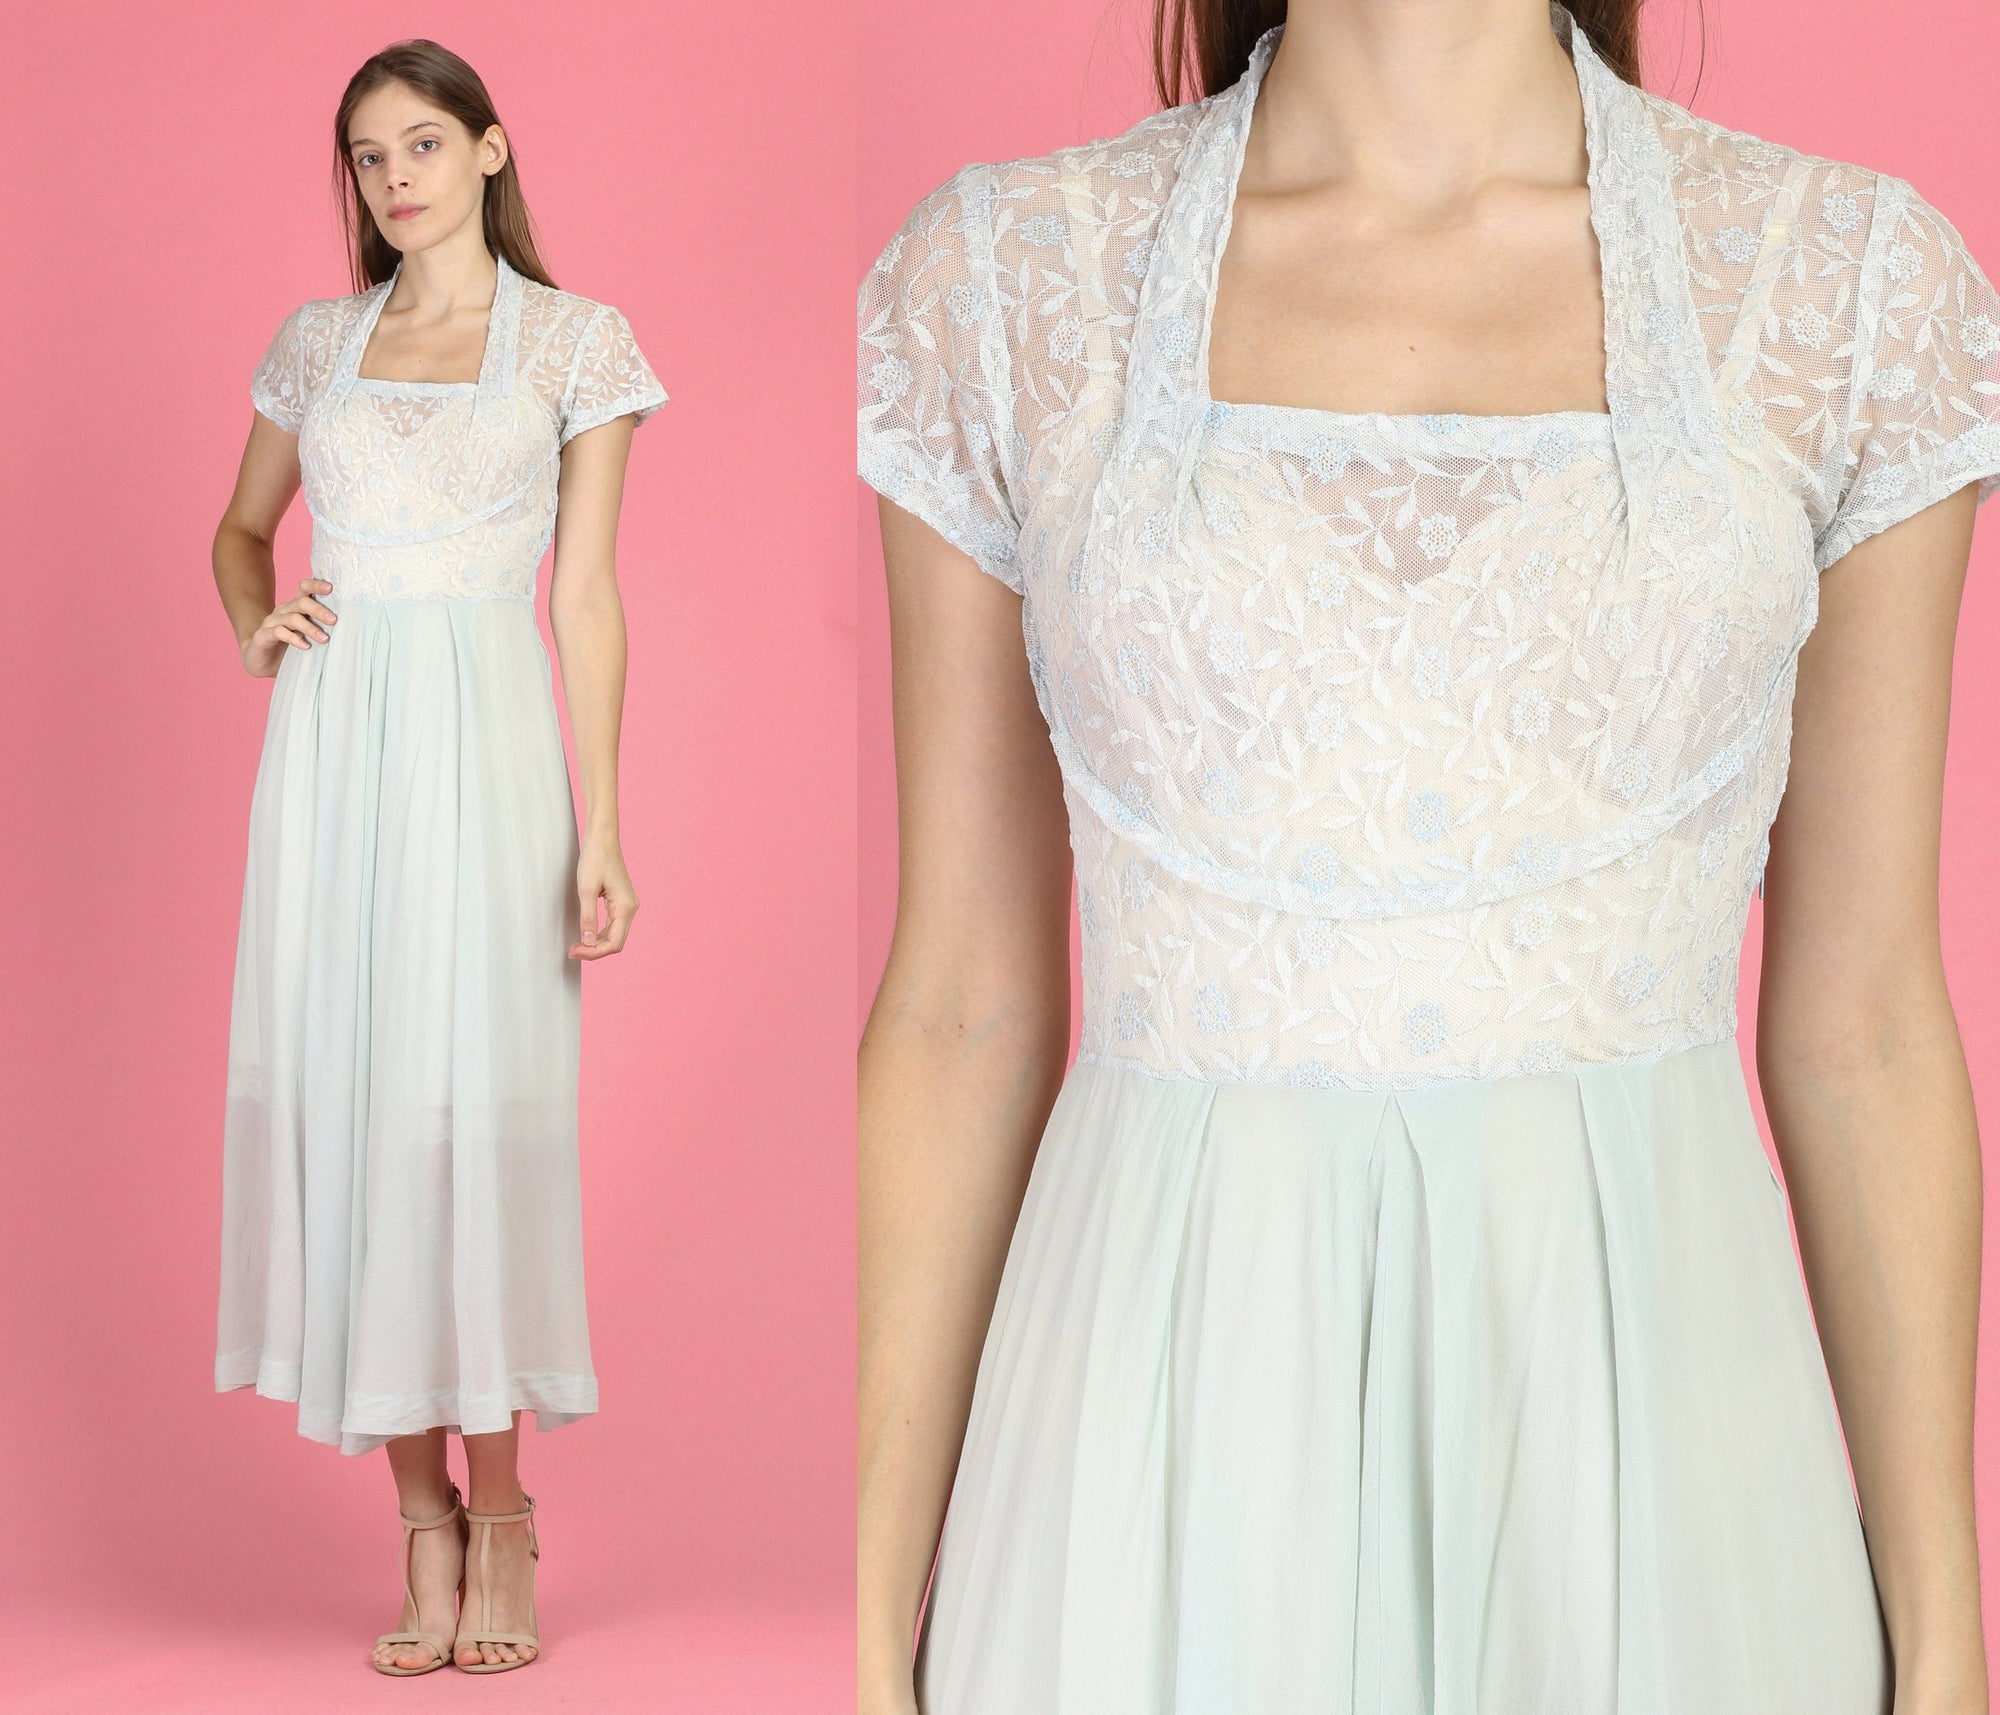 Vintage 1930s Sheer Blue Lace Bodice Dress - Small